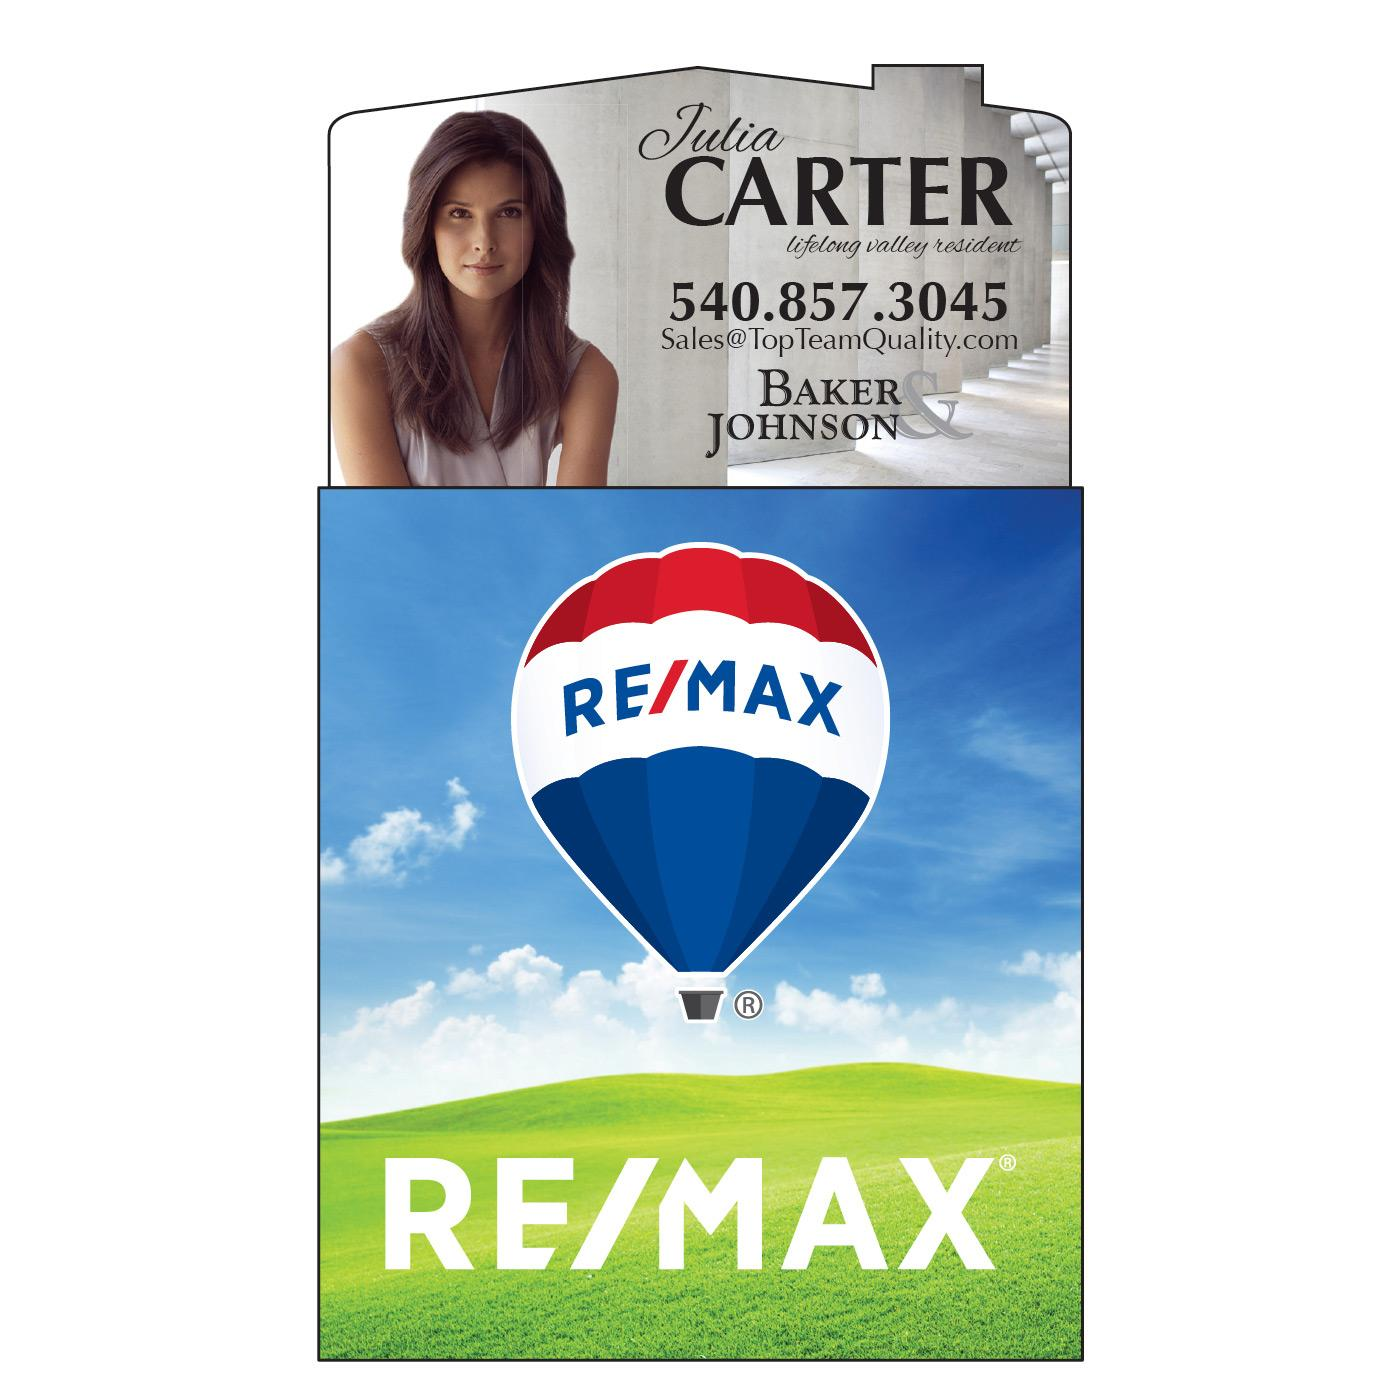 Calendar Magnet for RE/MAX agents